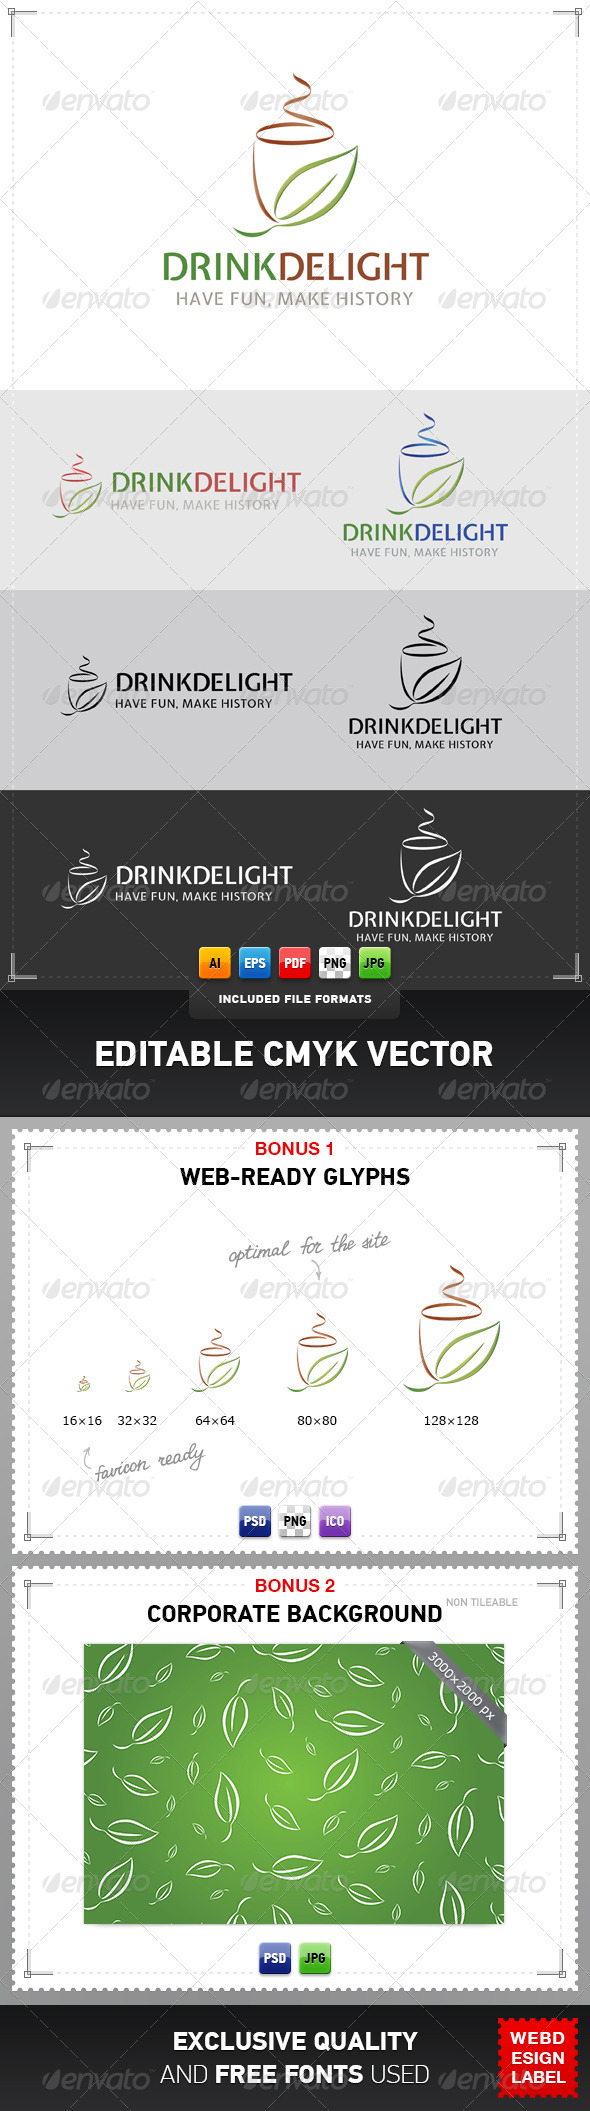 Drink Delight Logo - Food Logo Templates